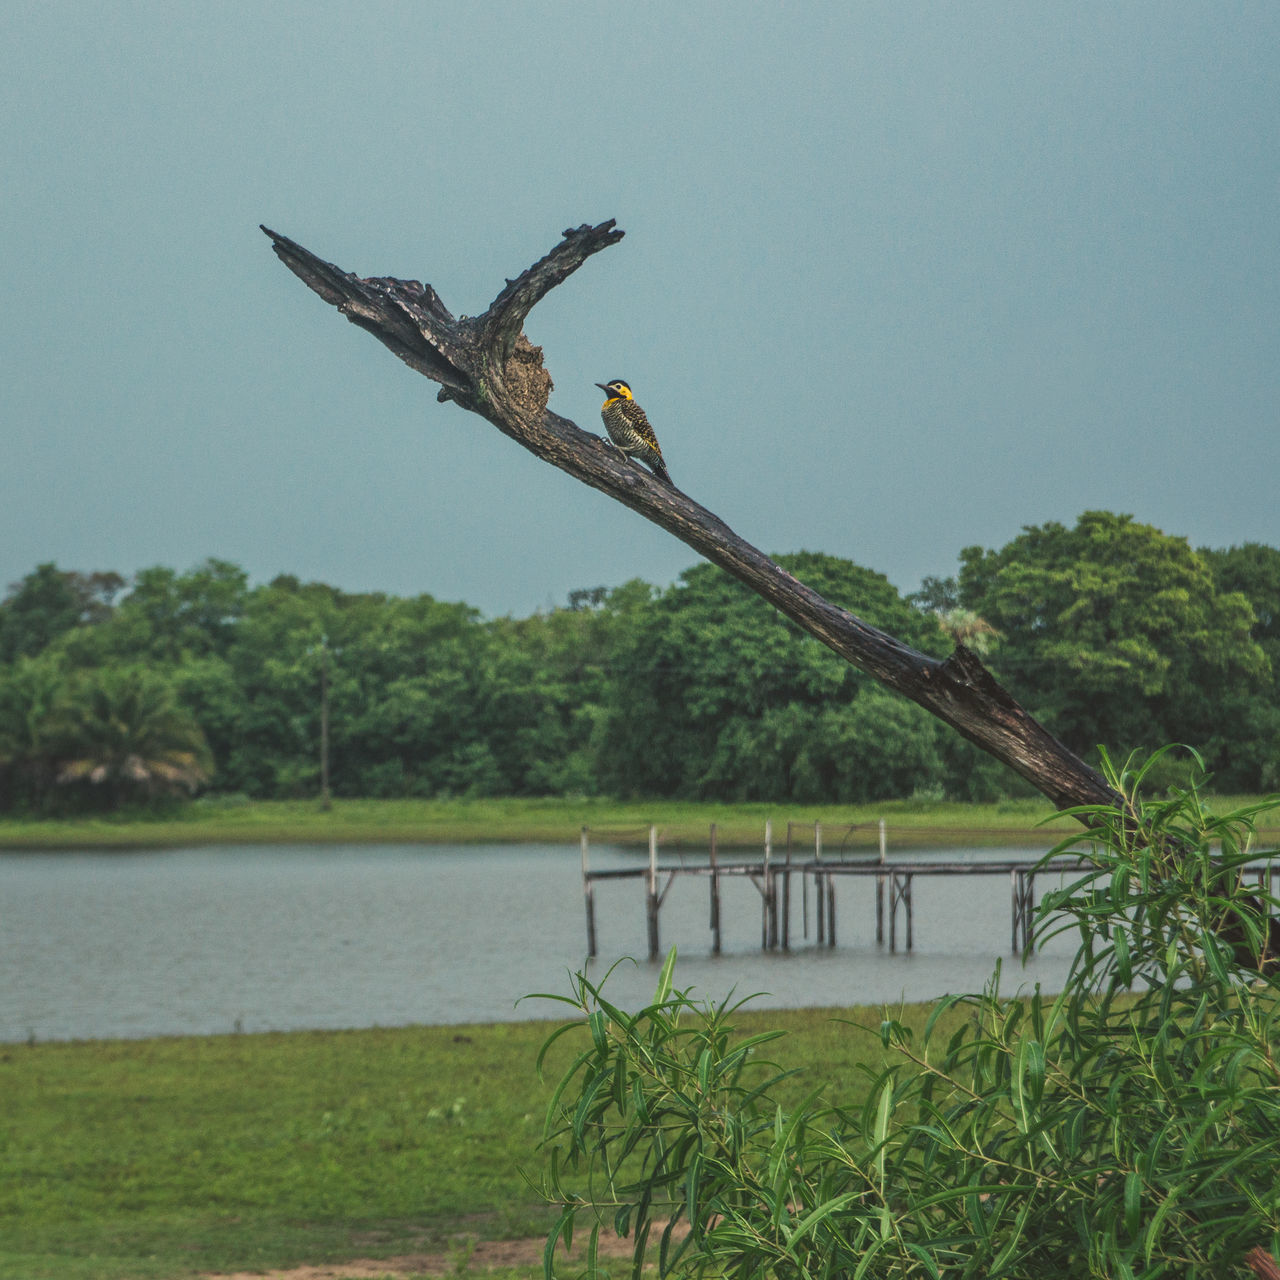 Another bird near our pousada in the Pantanal. Animal Animal Themes Animal Wildlife Animals In The Wild Animals In The Wild Beauty In Nature Bird Bird Of Prey Branch Cloudy Day Green Jungle Lake Moody Nature No People One Animal Outdoors Pier Sky Tree Water Wildlife Wildlife & Nature The Great Outdoors - 2017 EyeEm Awards